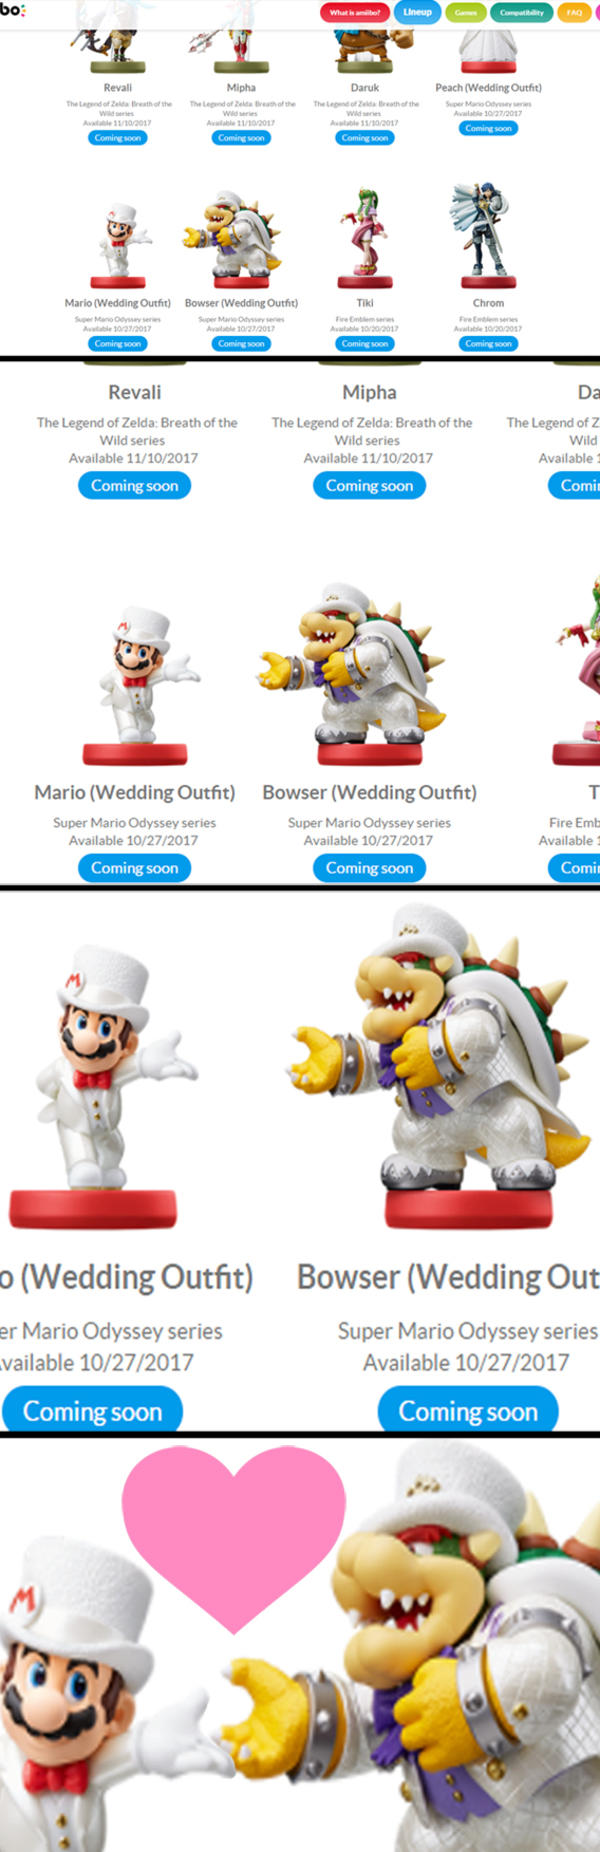 Mario Bowser Amiibo Wedding Super Mario Odyssey Know